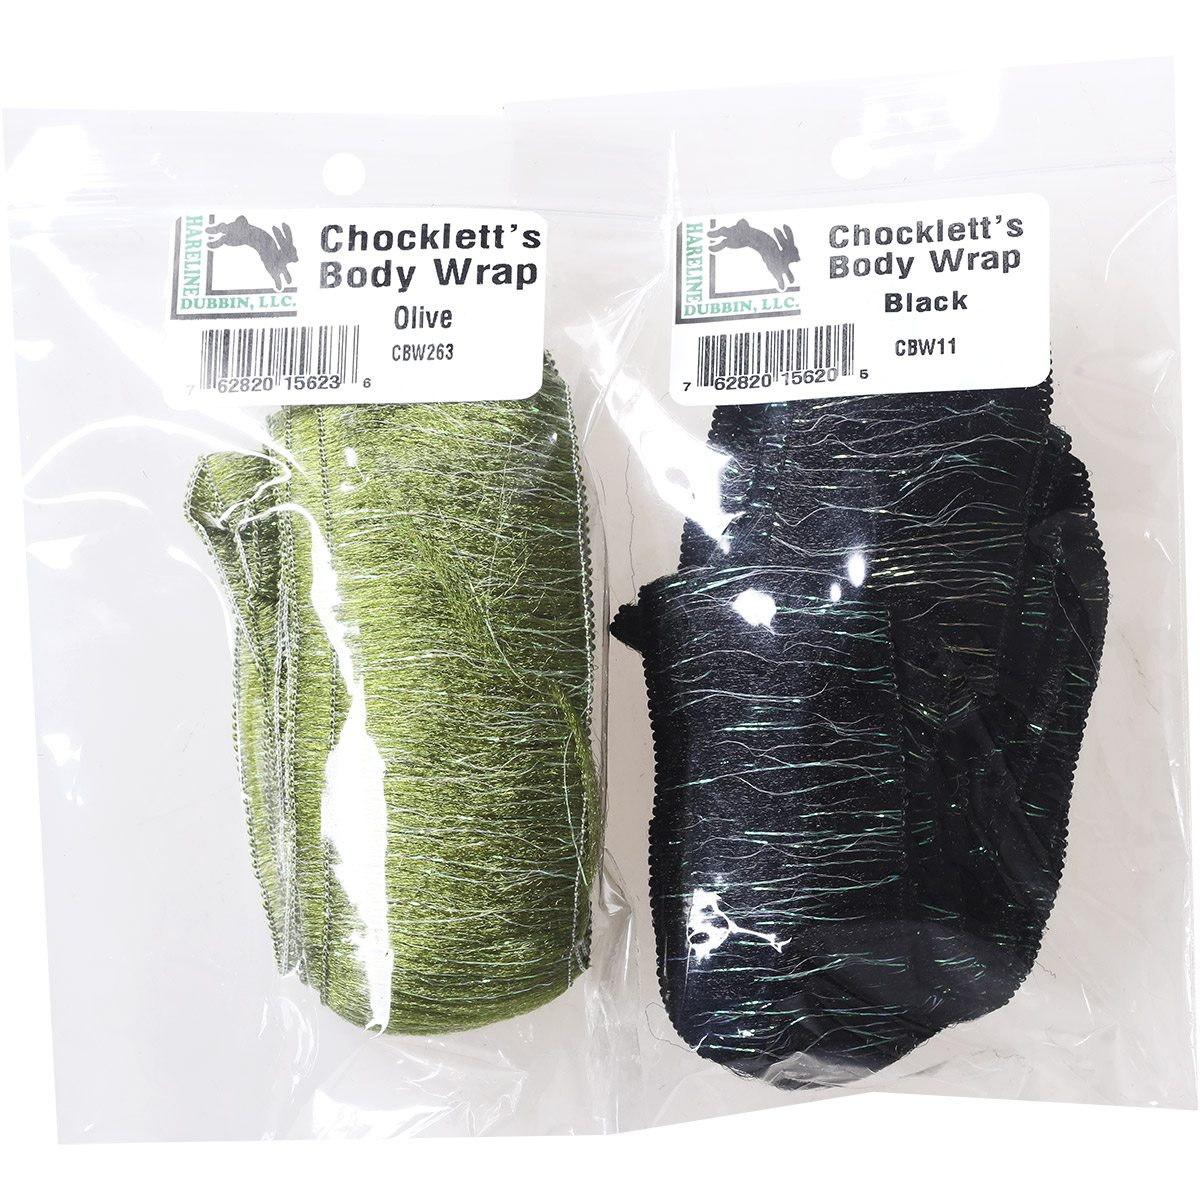 Hareline Chockletts Body Wrap